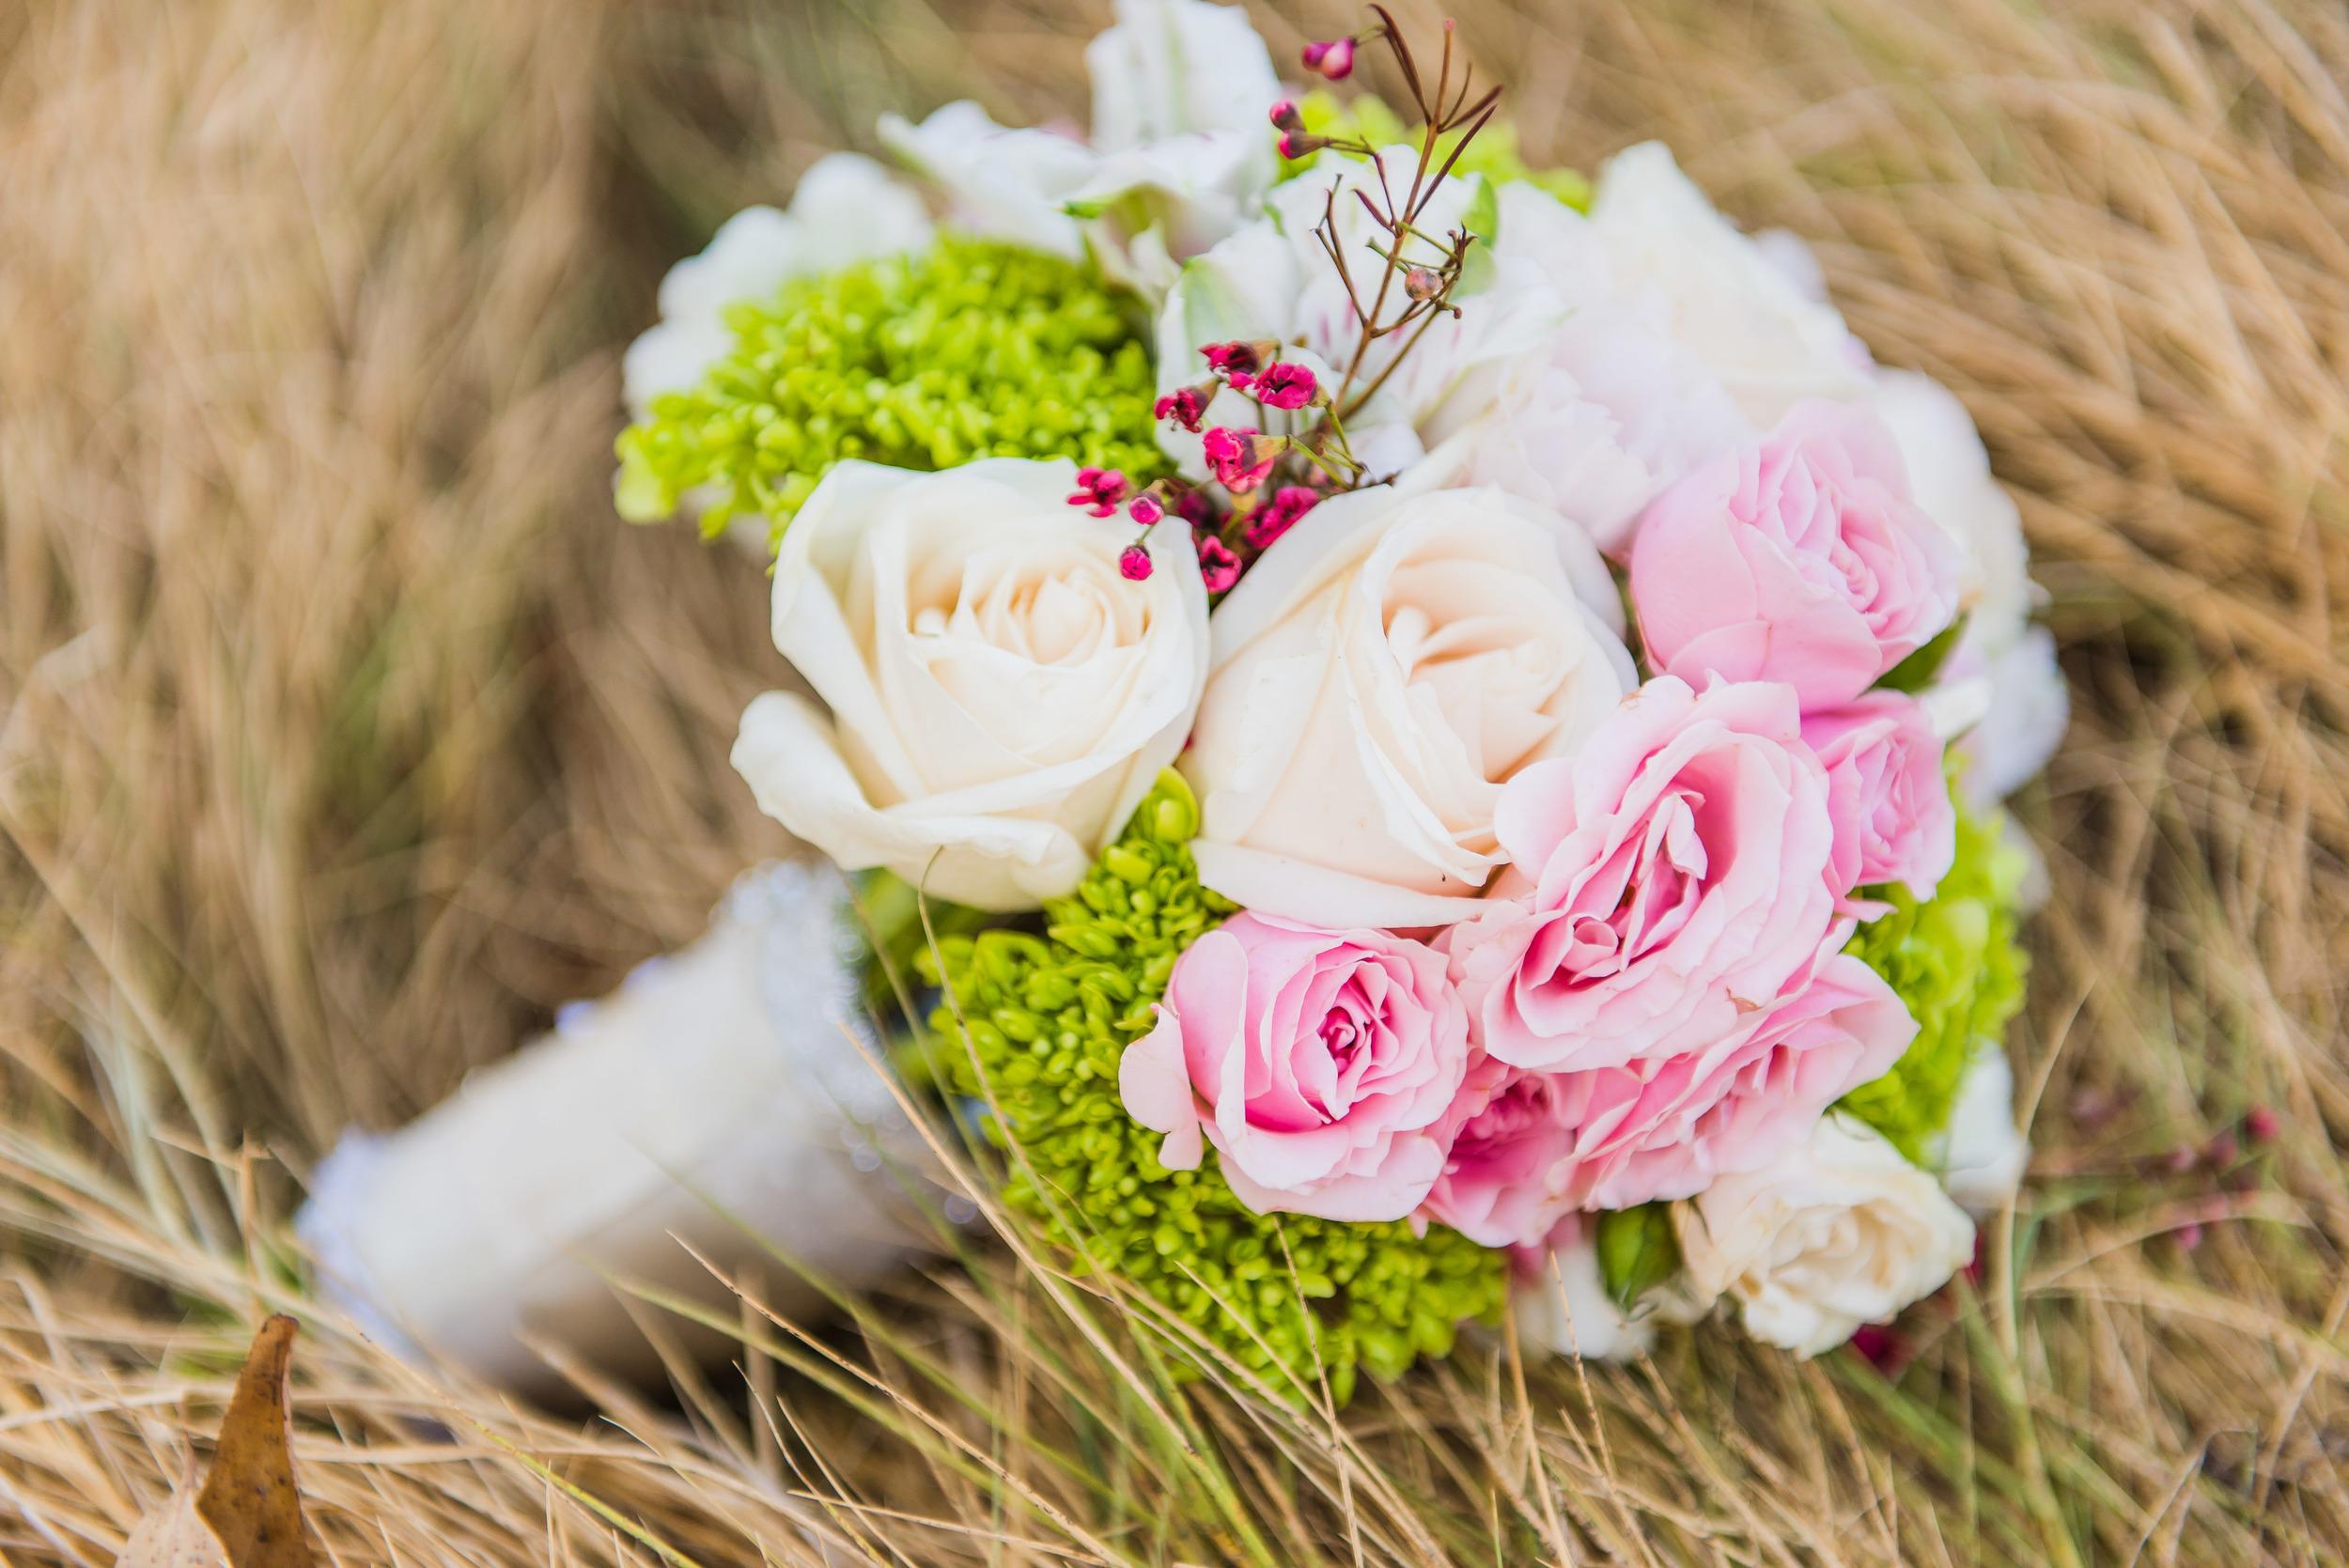 Wedding Photography, Inga's Blooms, Bridal Bouquet.jpg